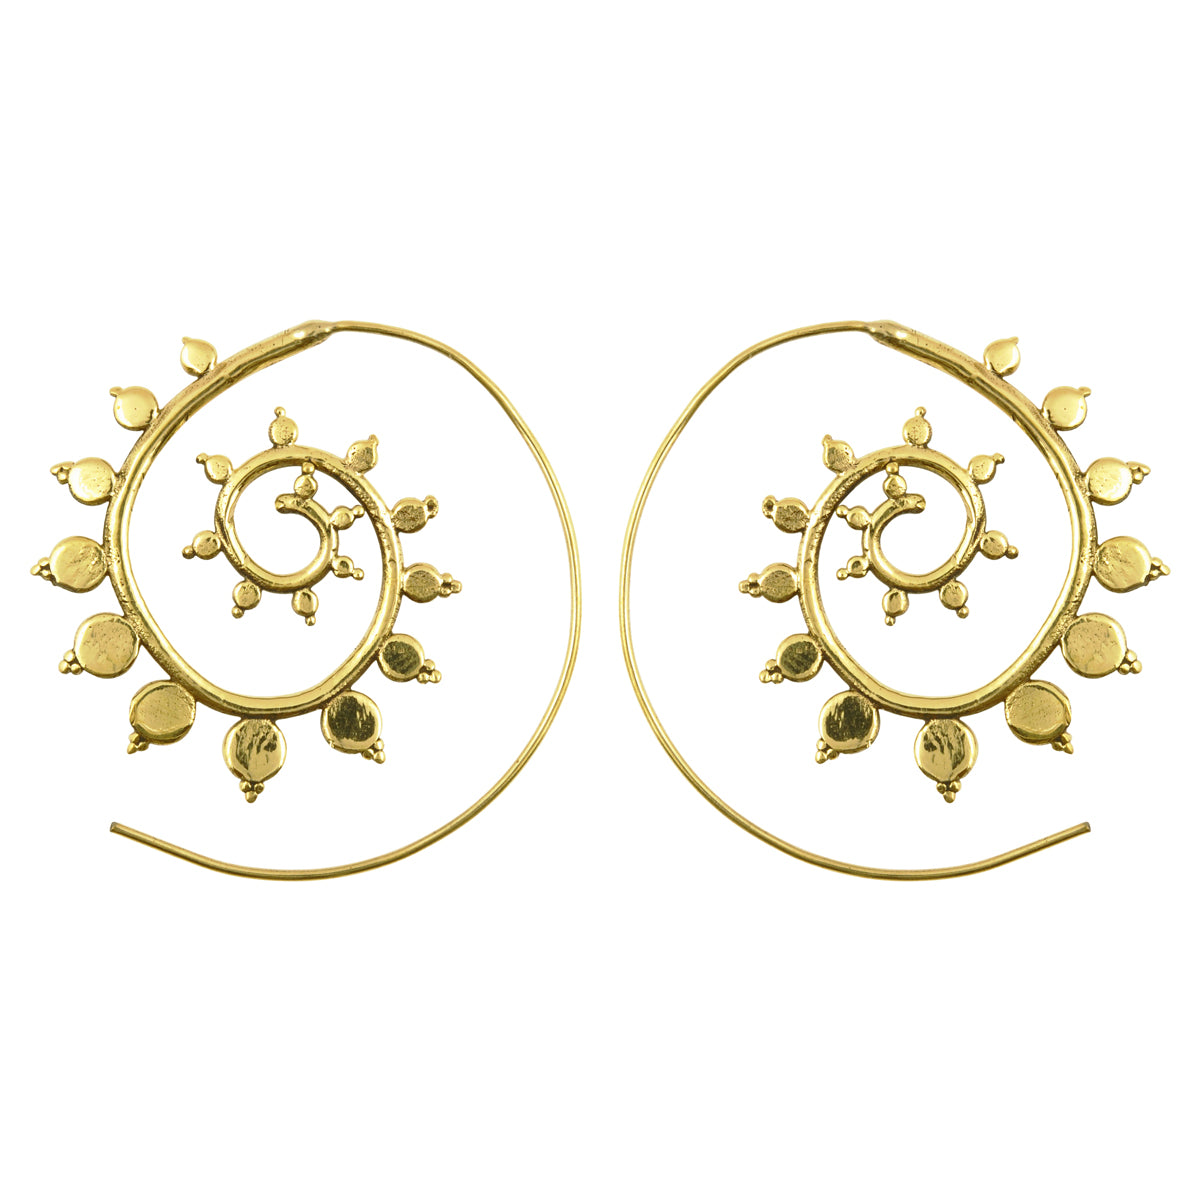 Simple-Brass Cordate Spiral Earrings-Gold-One Pair